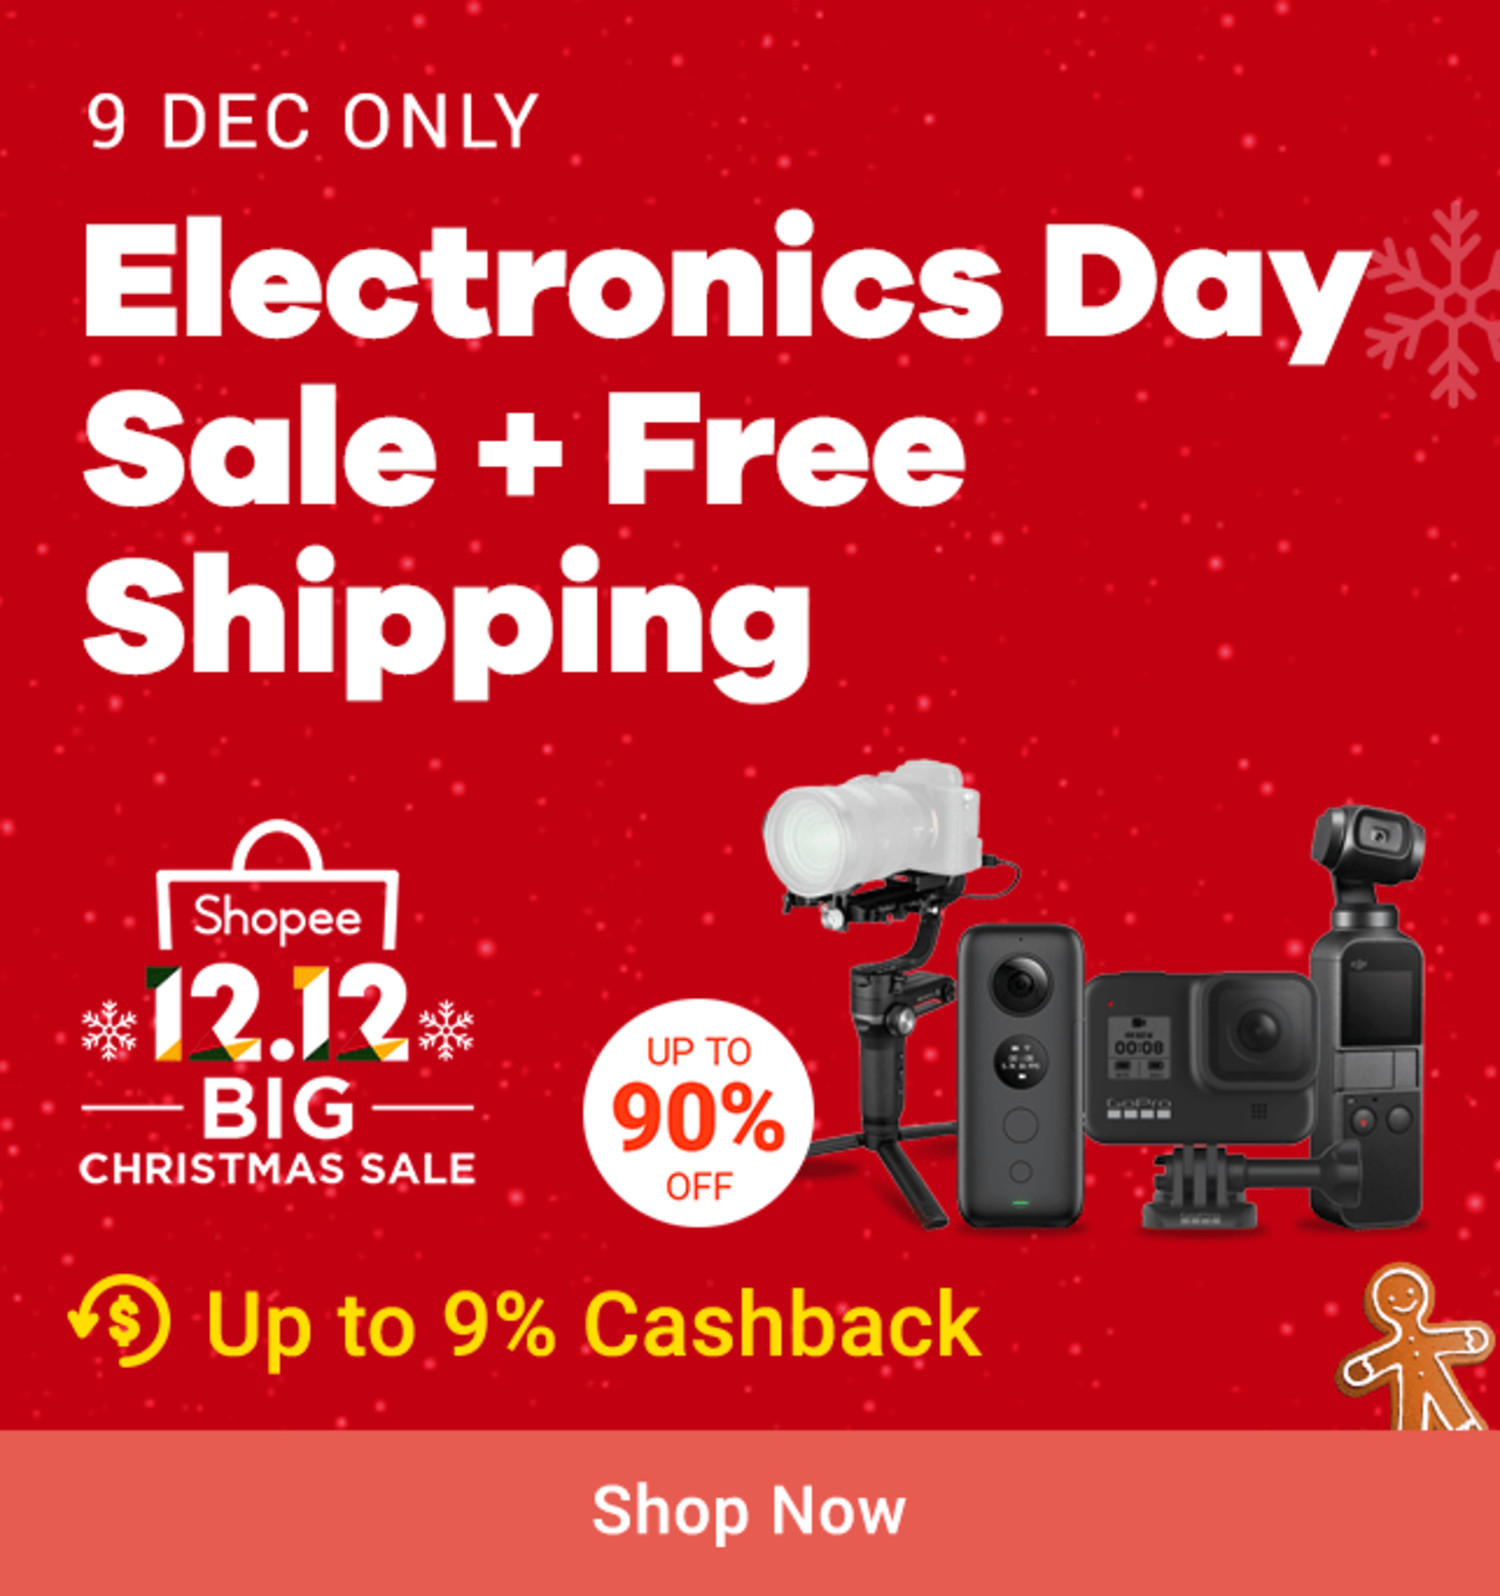 Shopee Electronics Day